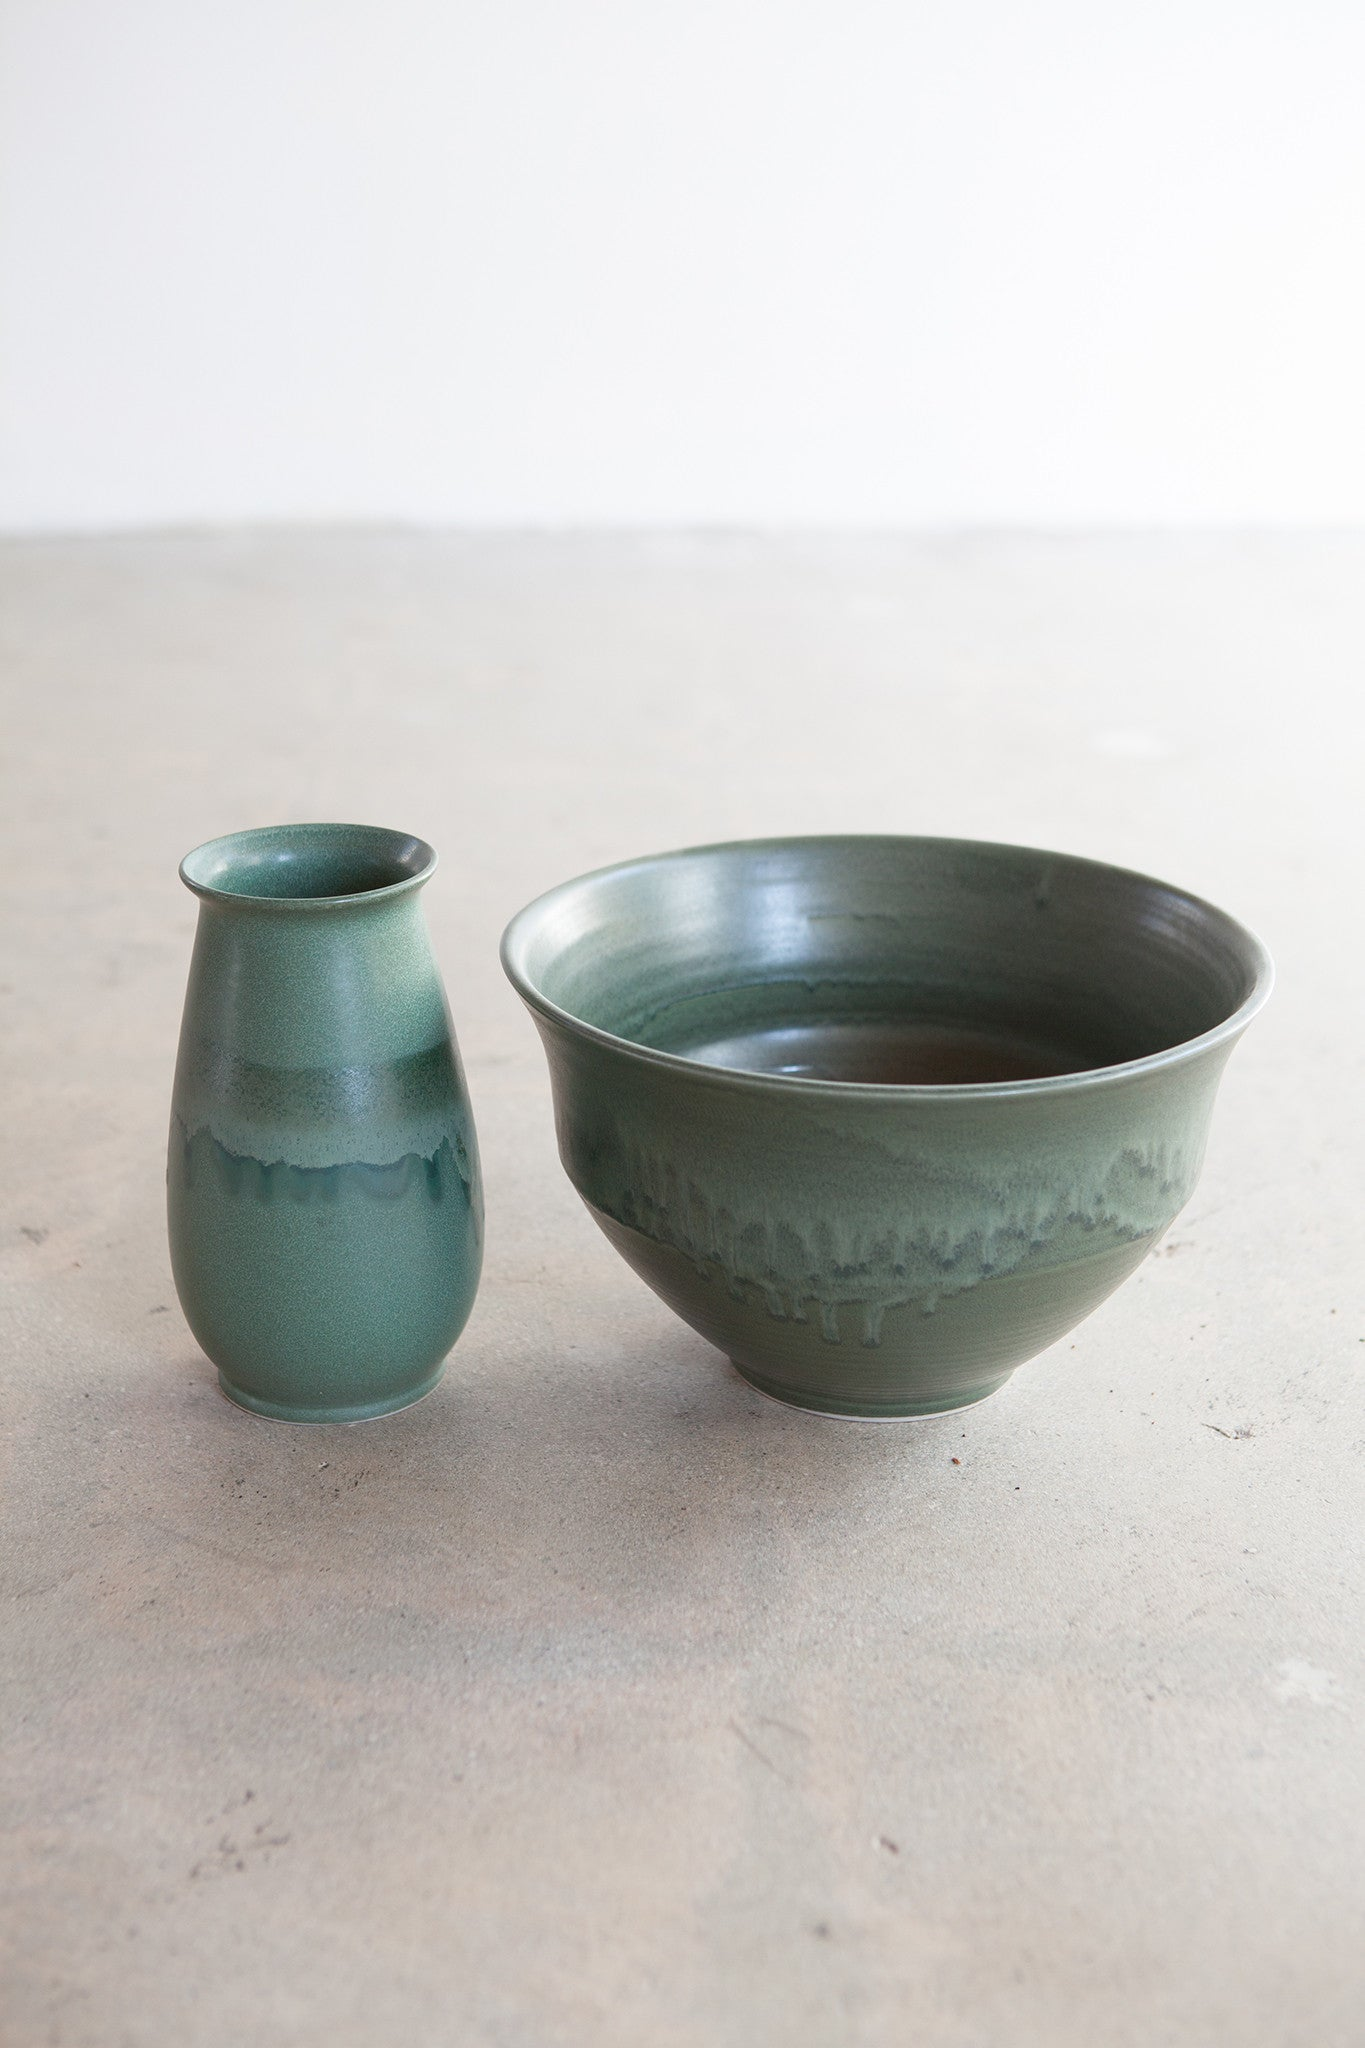 Vintage green pottery set SOLD